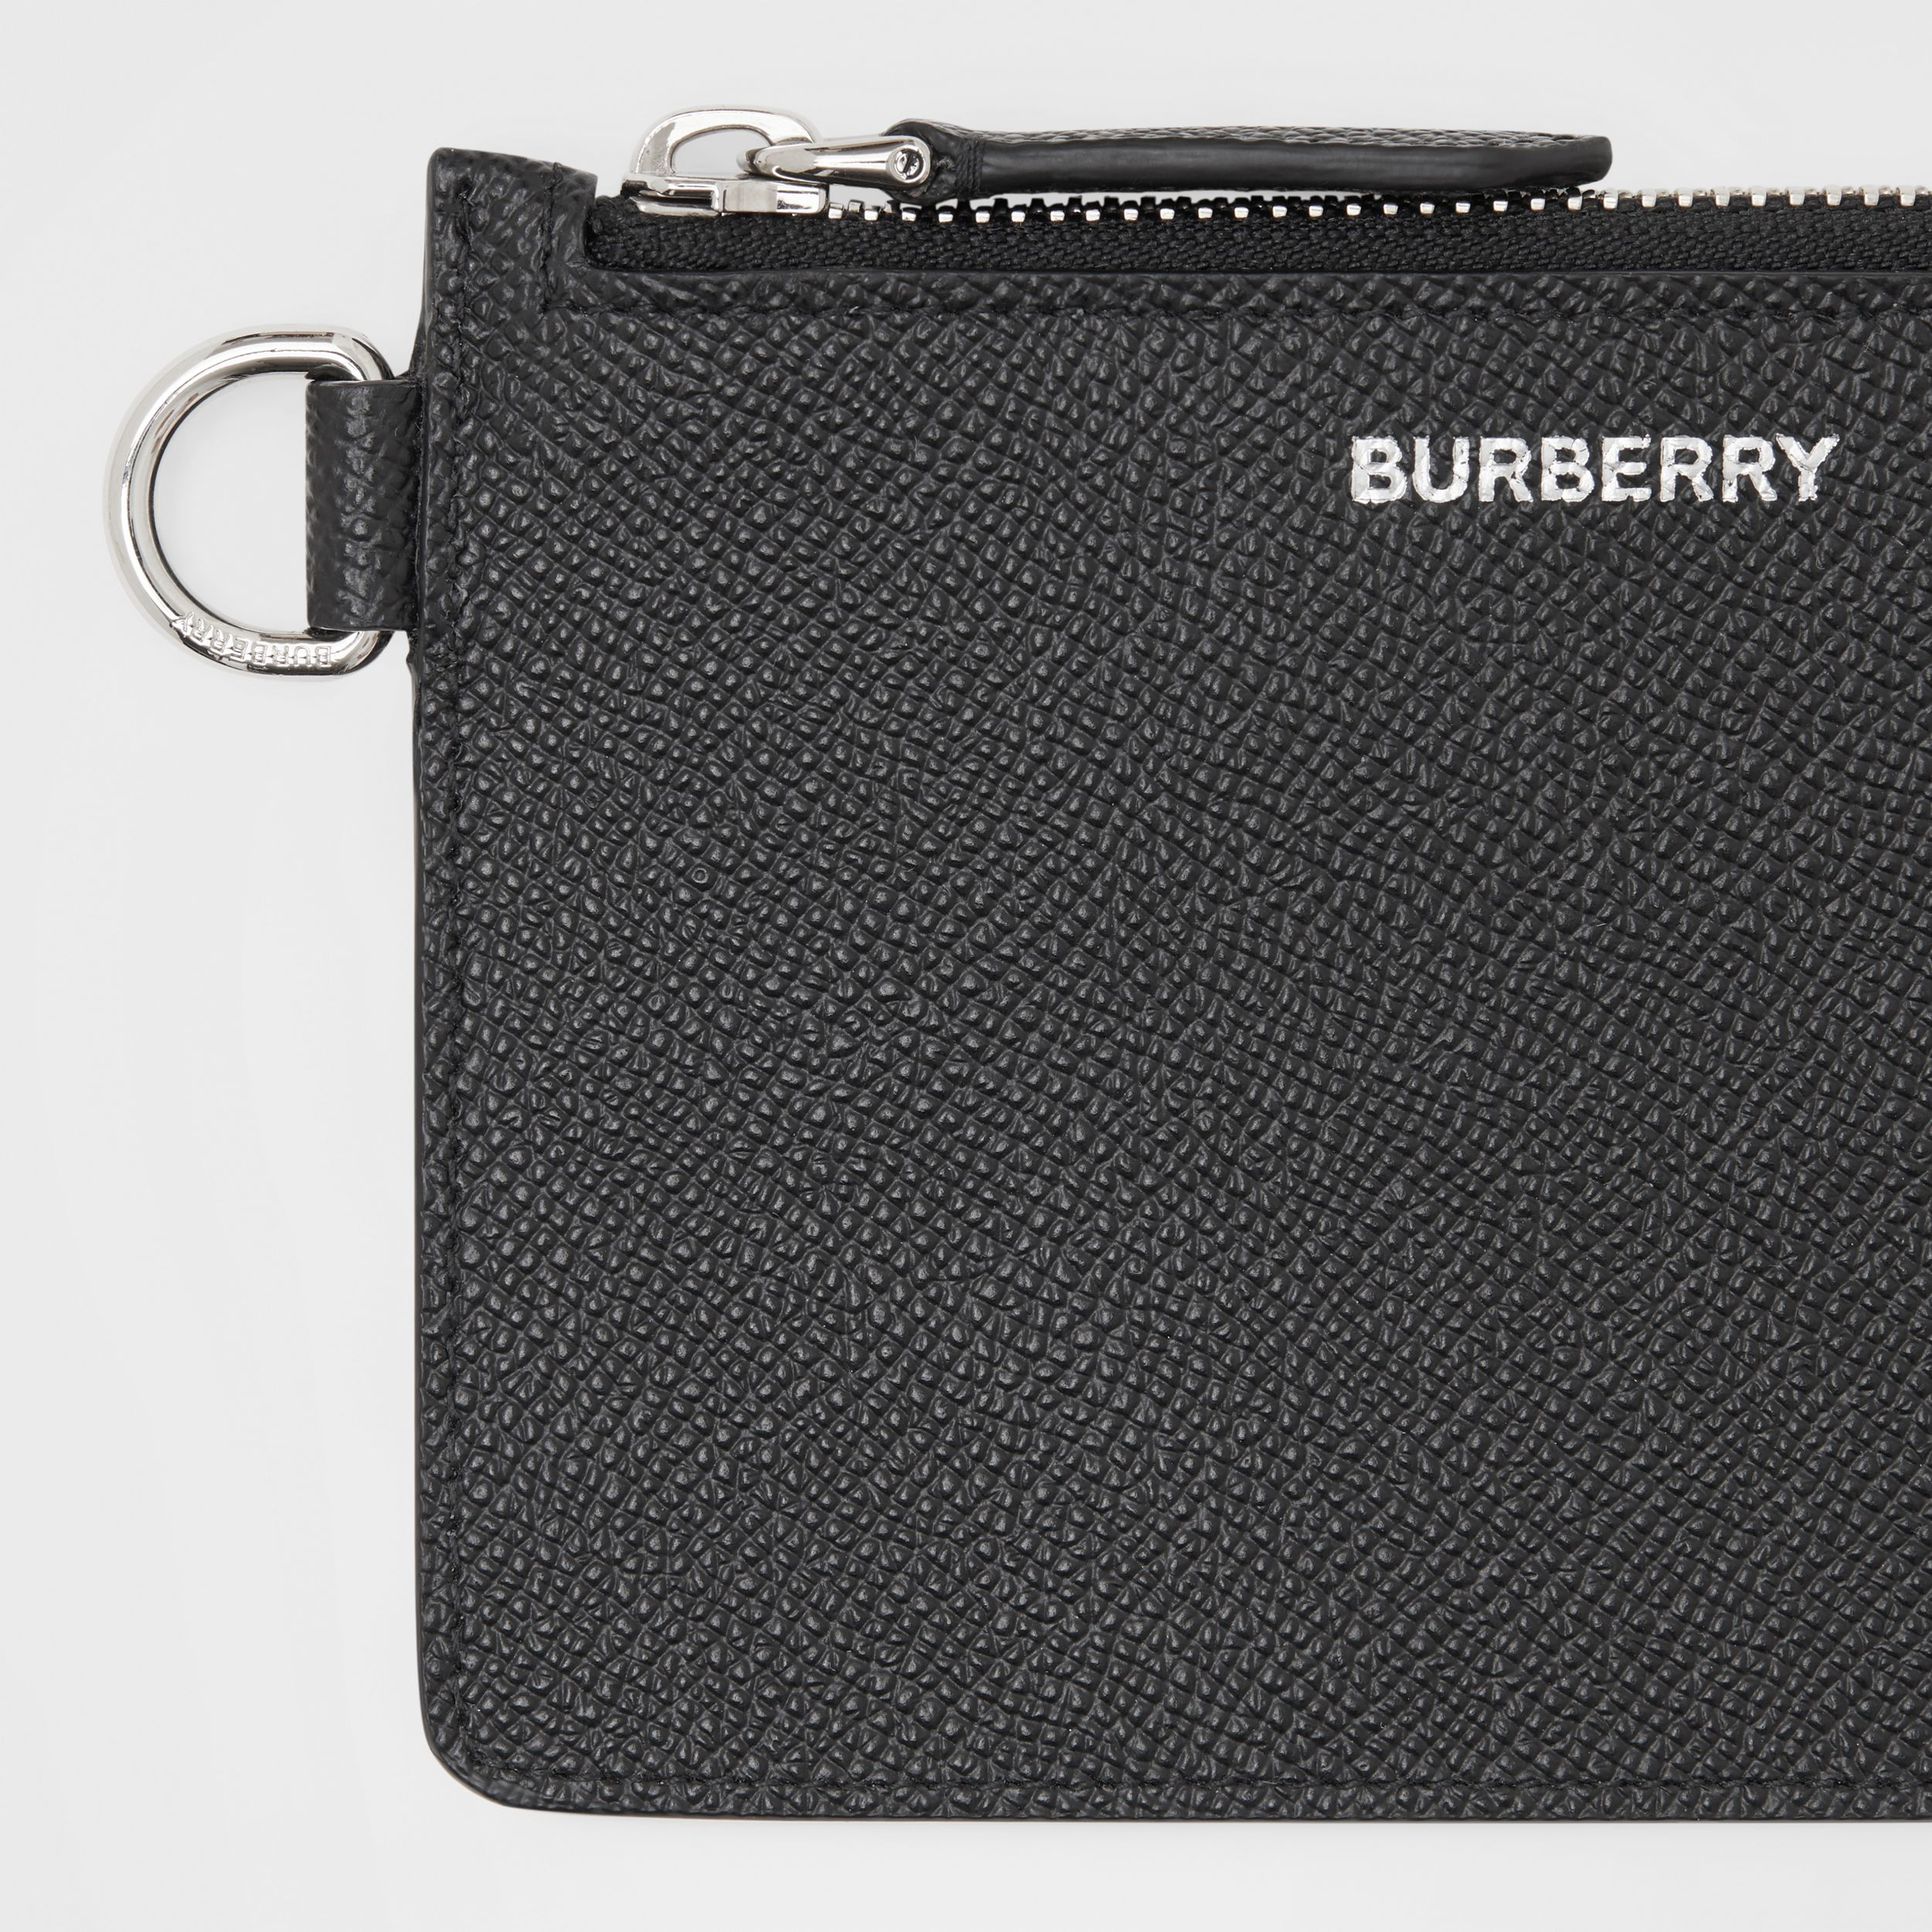 Grainy Leather Zip Coin Case in Black - Men | Burberry - 2